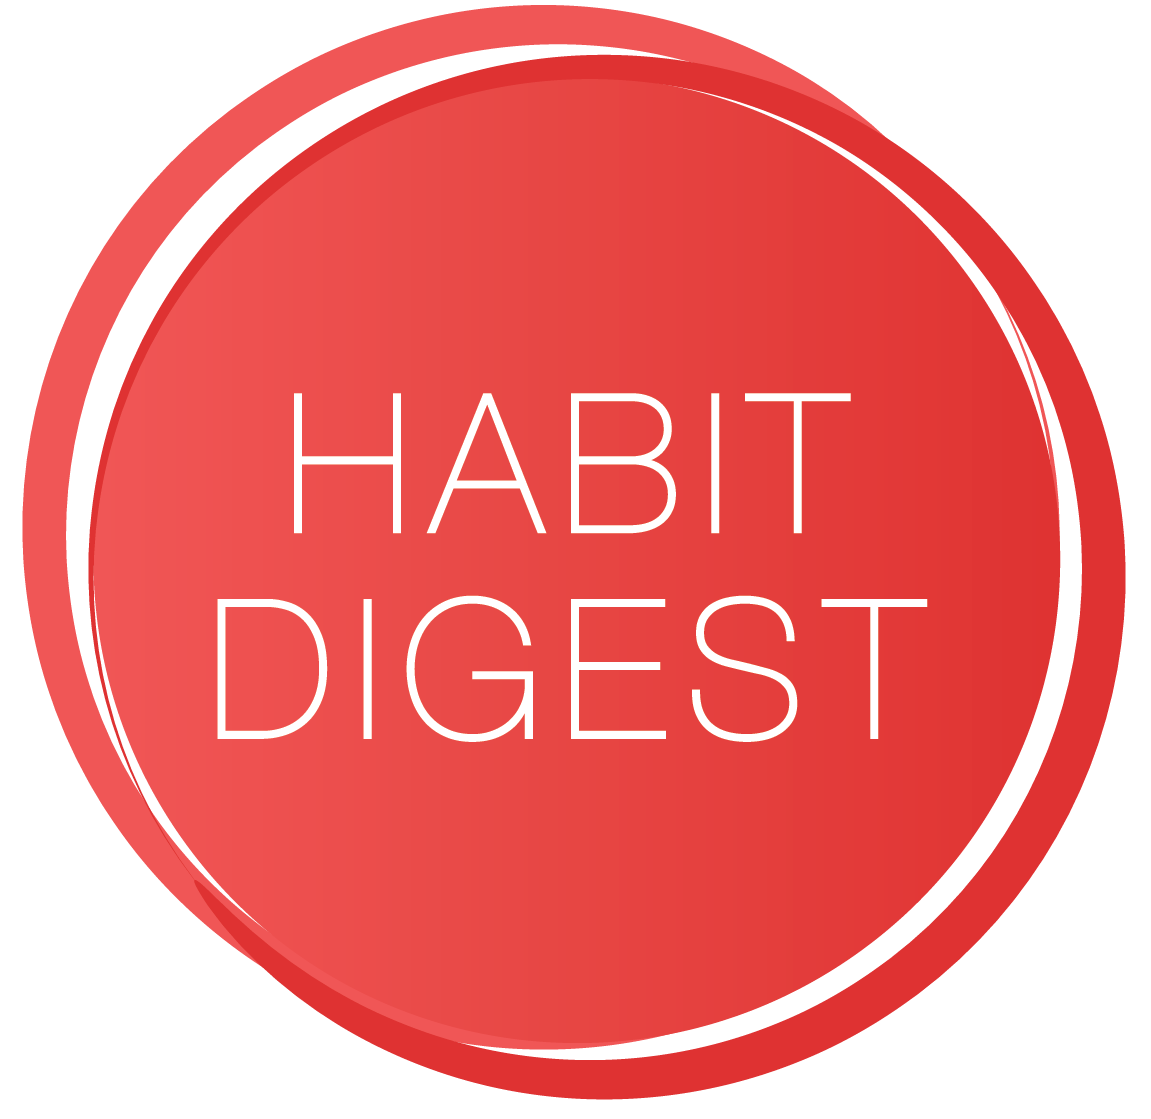 The Habit Digest